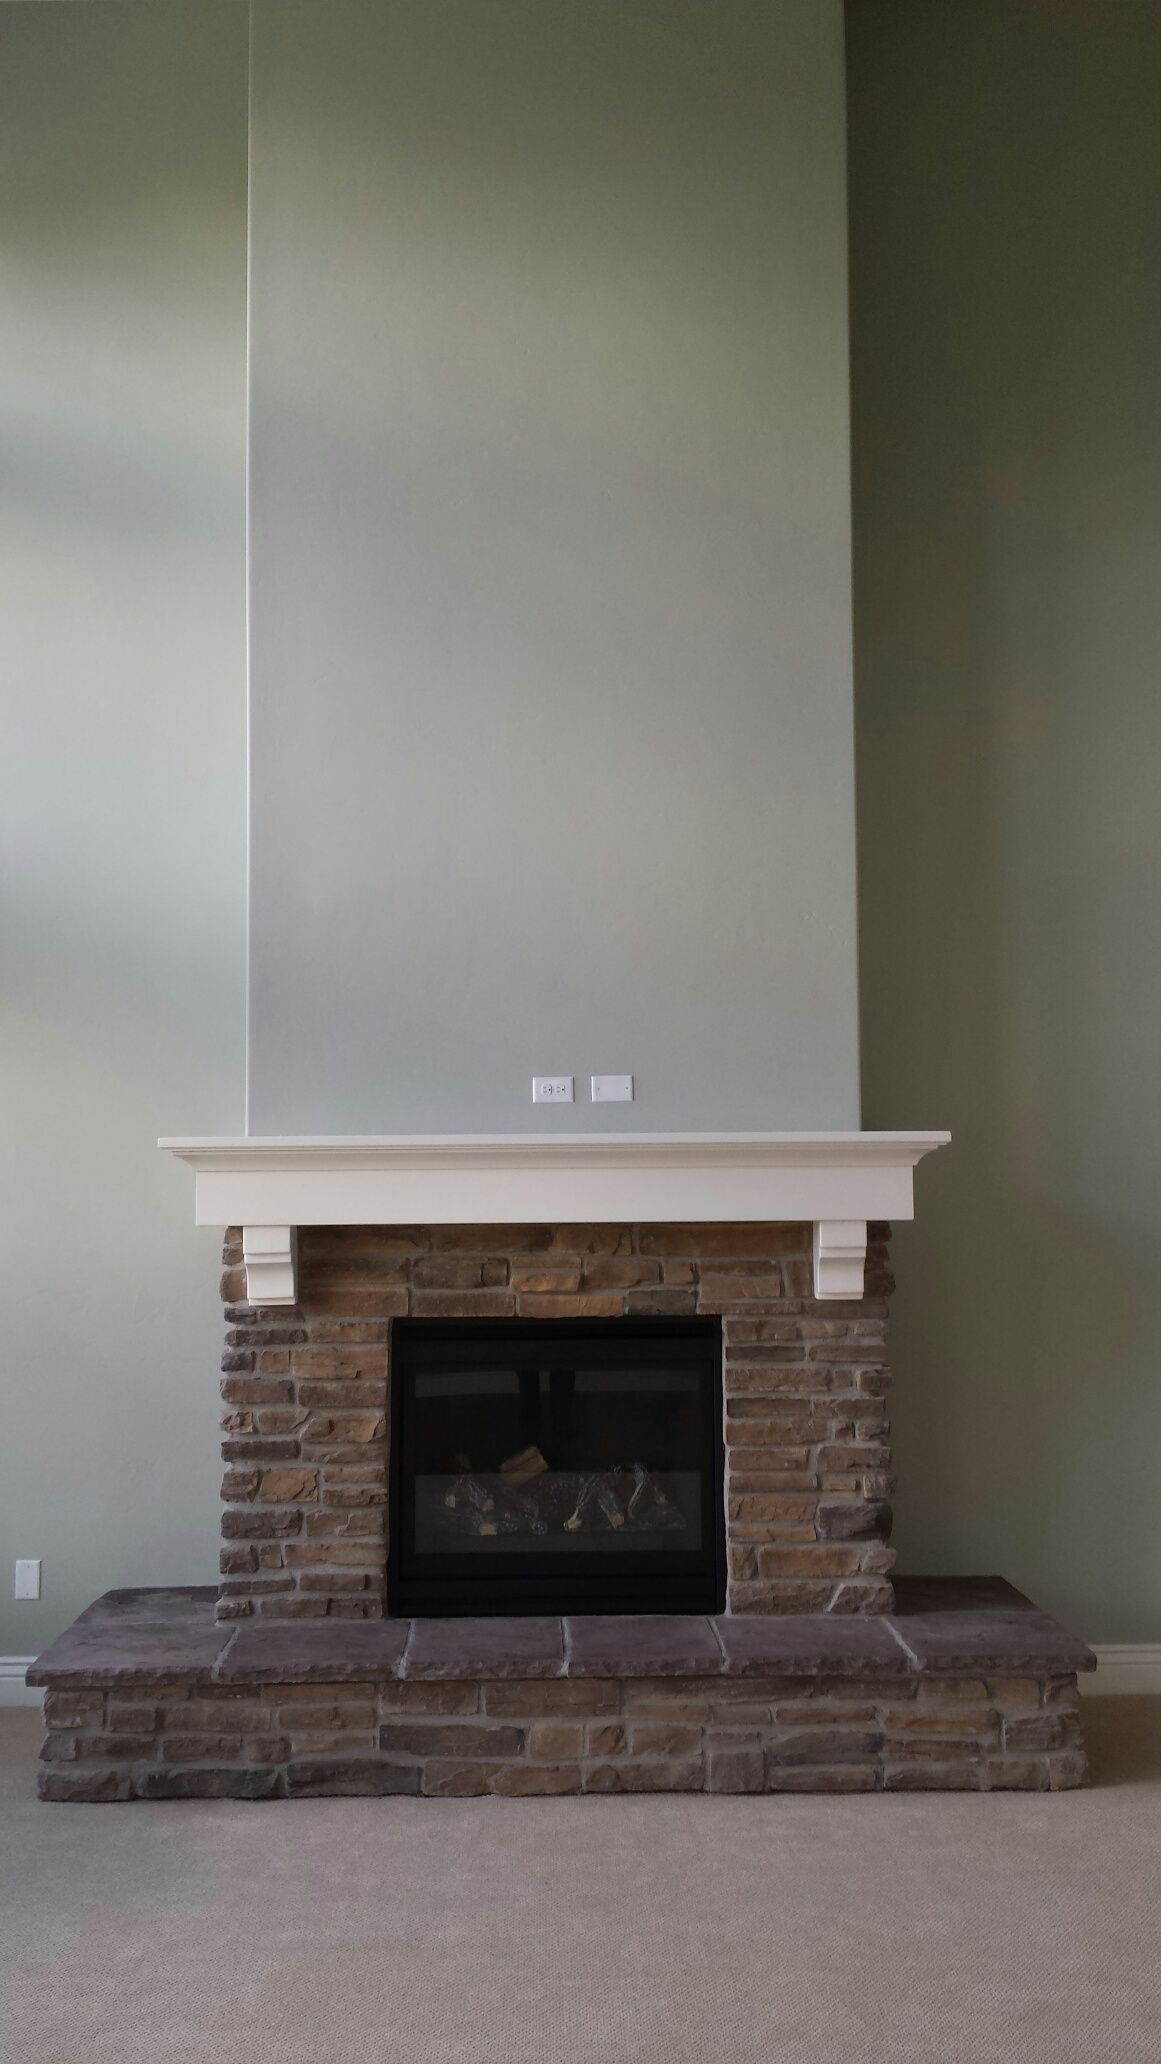 Fireplace Raised Hearth. Gas Fireplace With Mantle  Raised Hearth Mantel cervinoutah com HOME